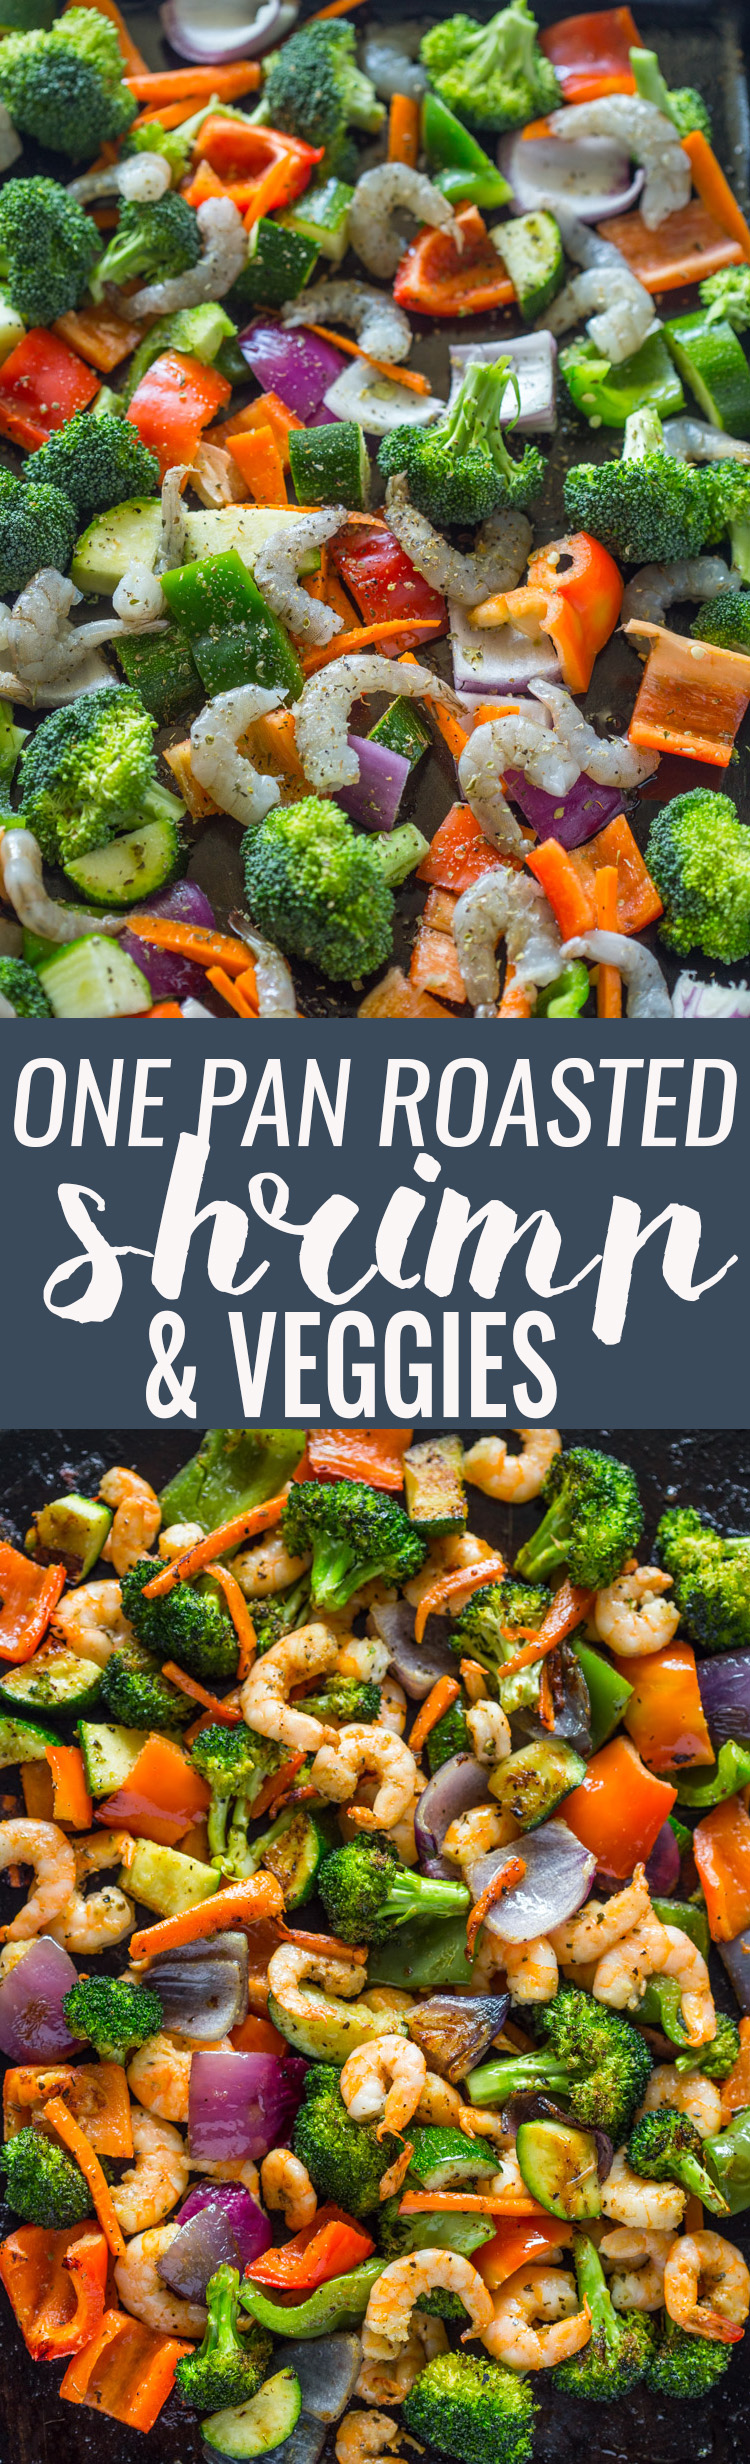 Easy One Pan Roasted Shrimp and Veggies